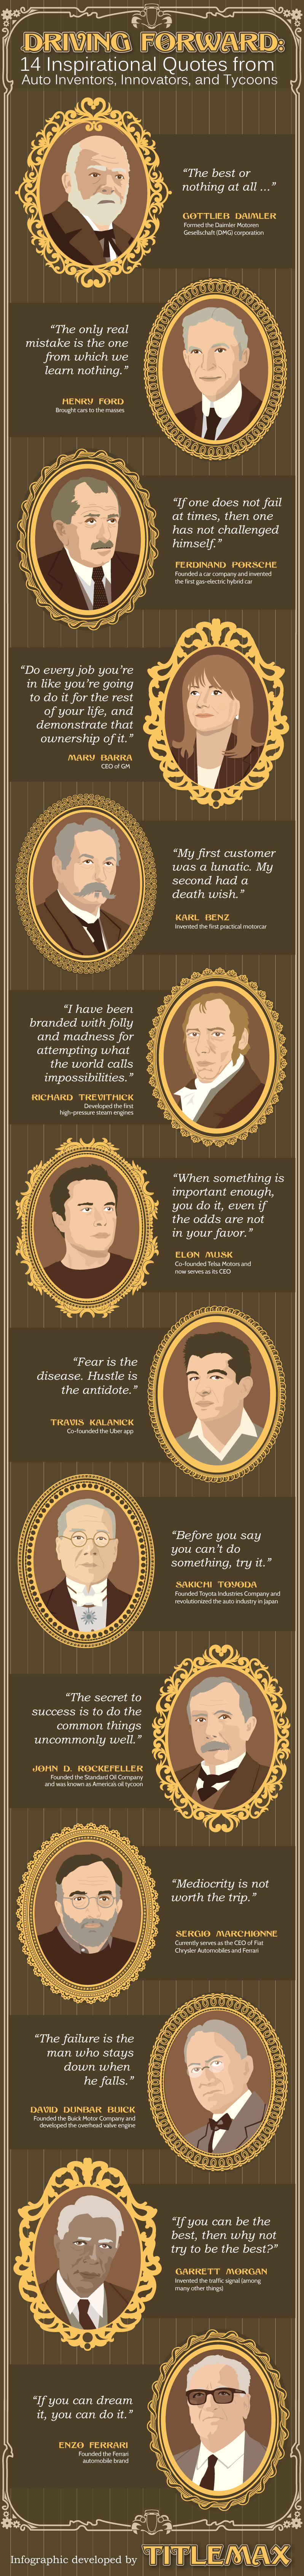 Driving Forward: 14 Inspirational Quotes from Auto Inventors, Innovators, and Tycoons #Infographic